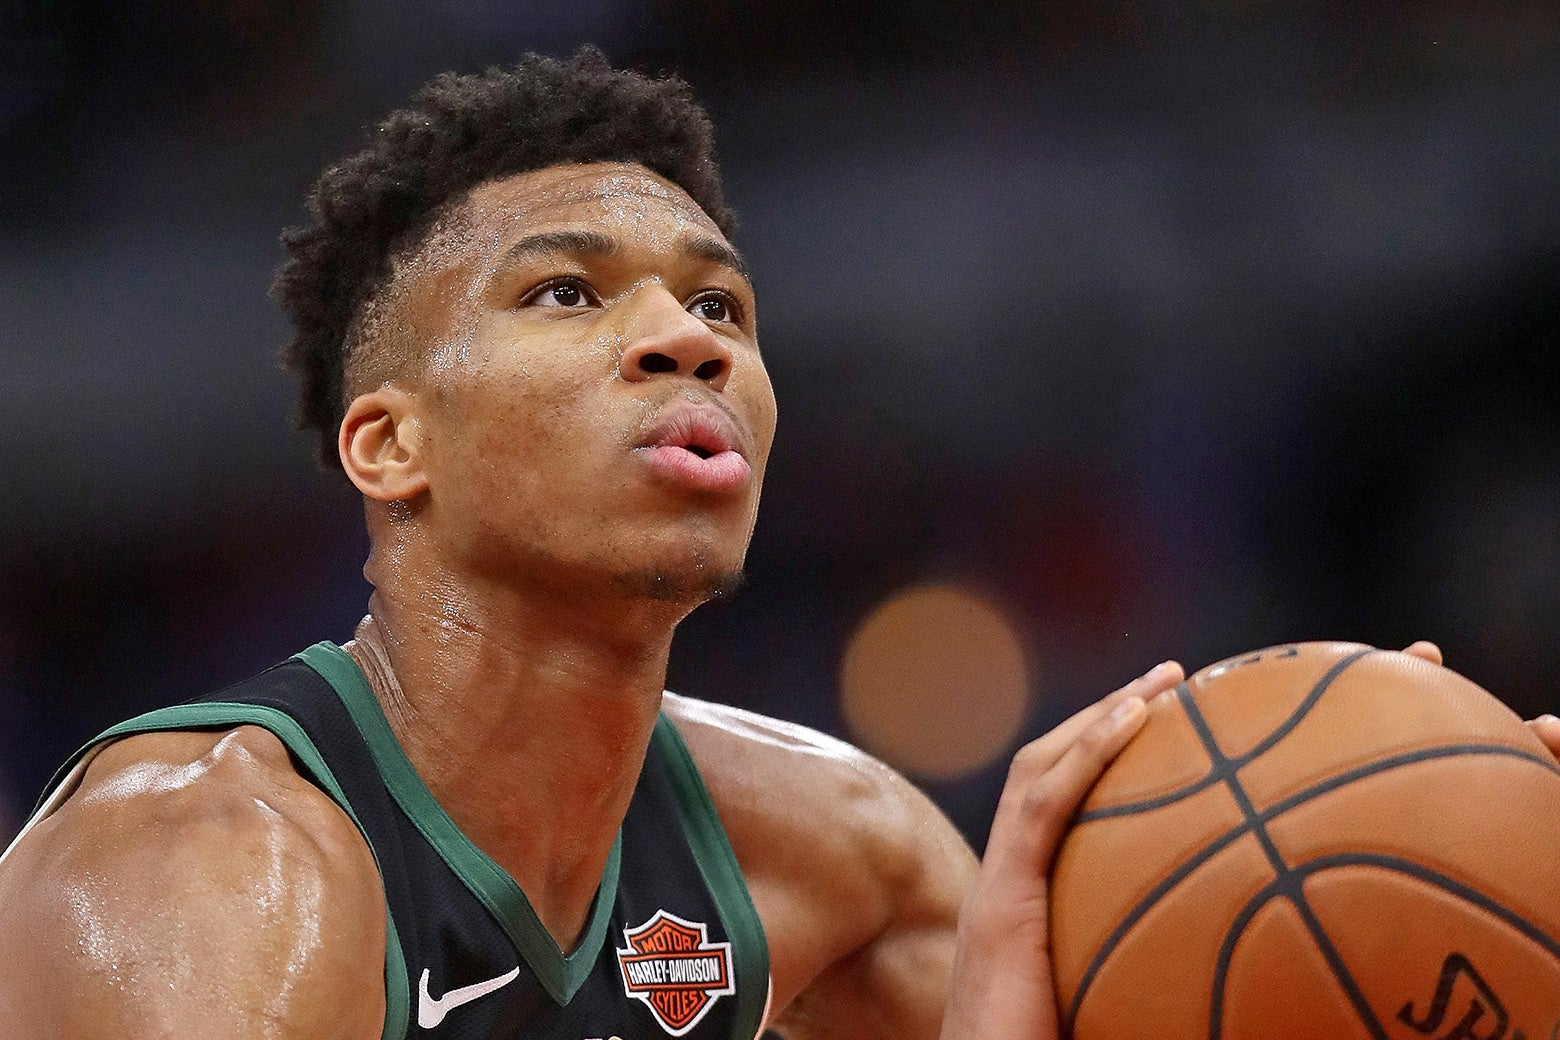 Giannis Antetokounmpo holding a basketball, preparing to shoot.